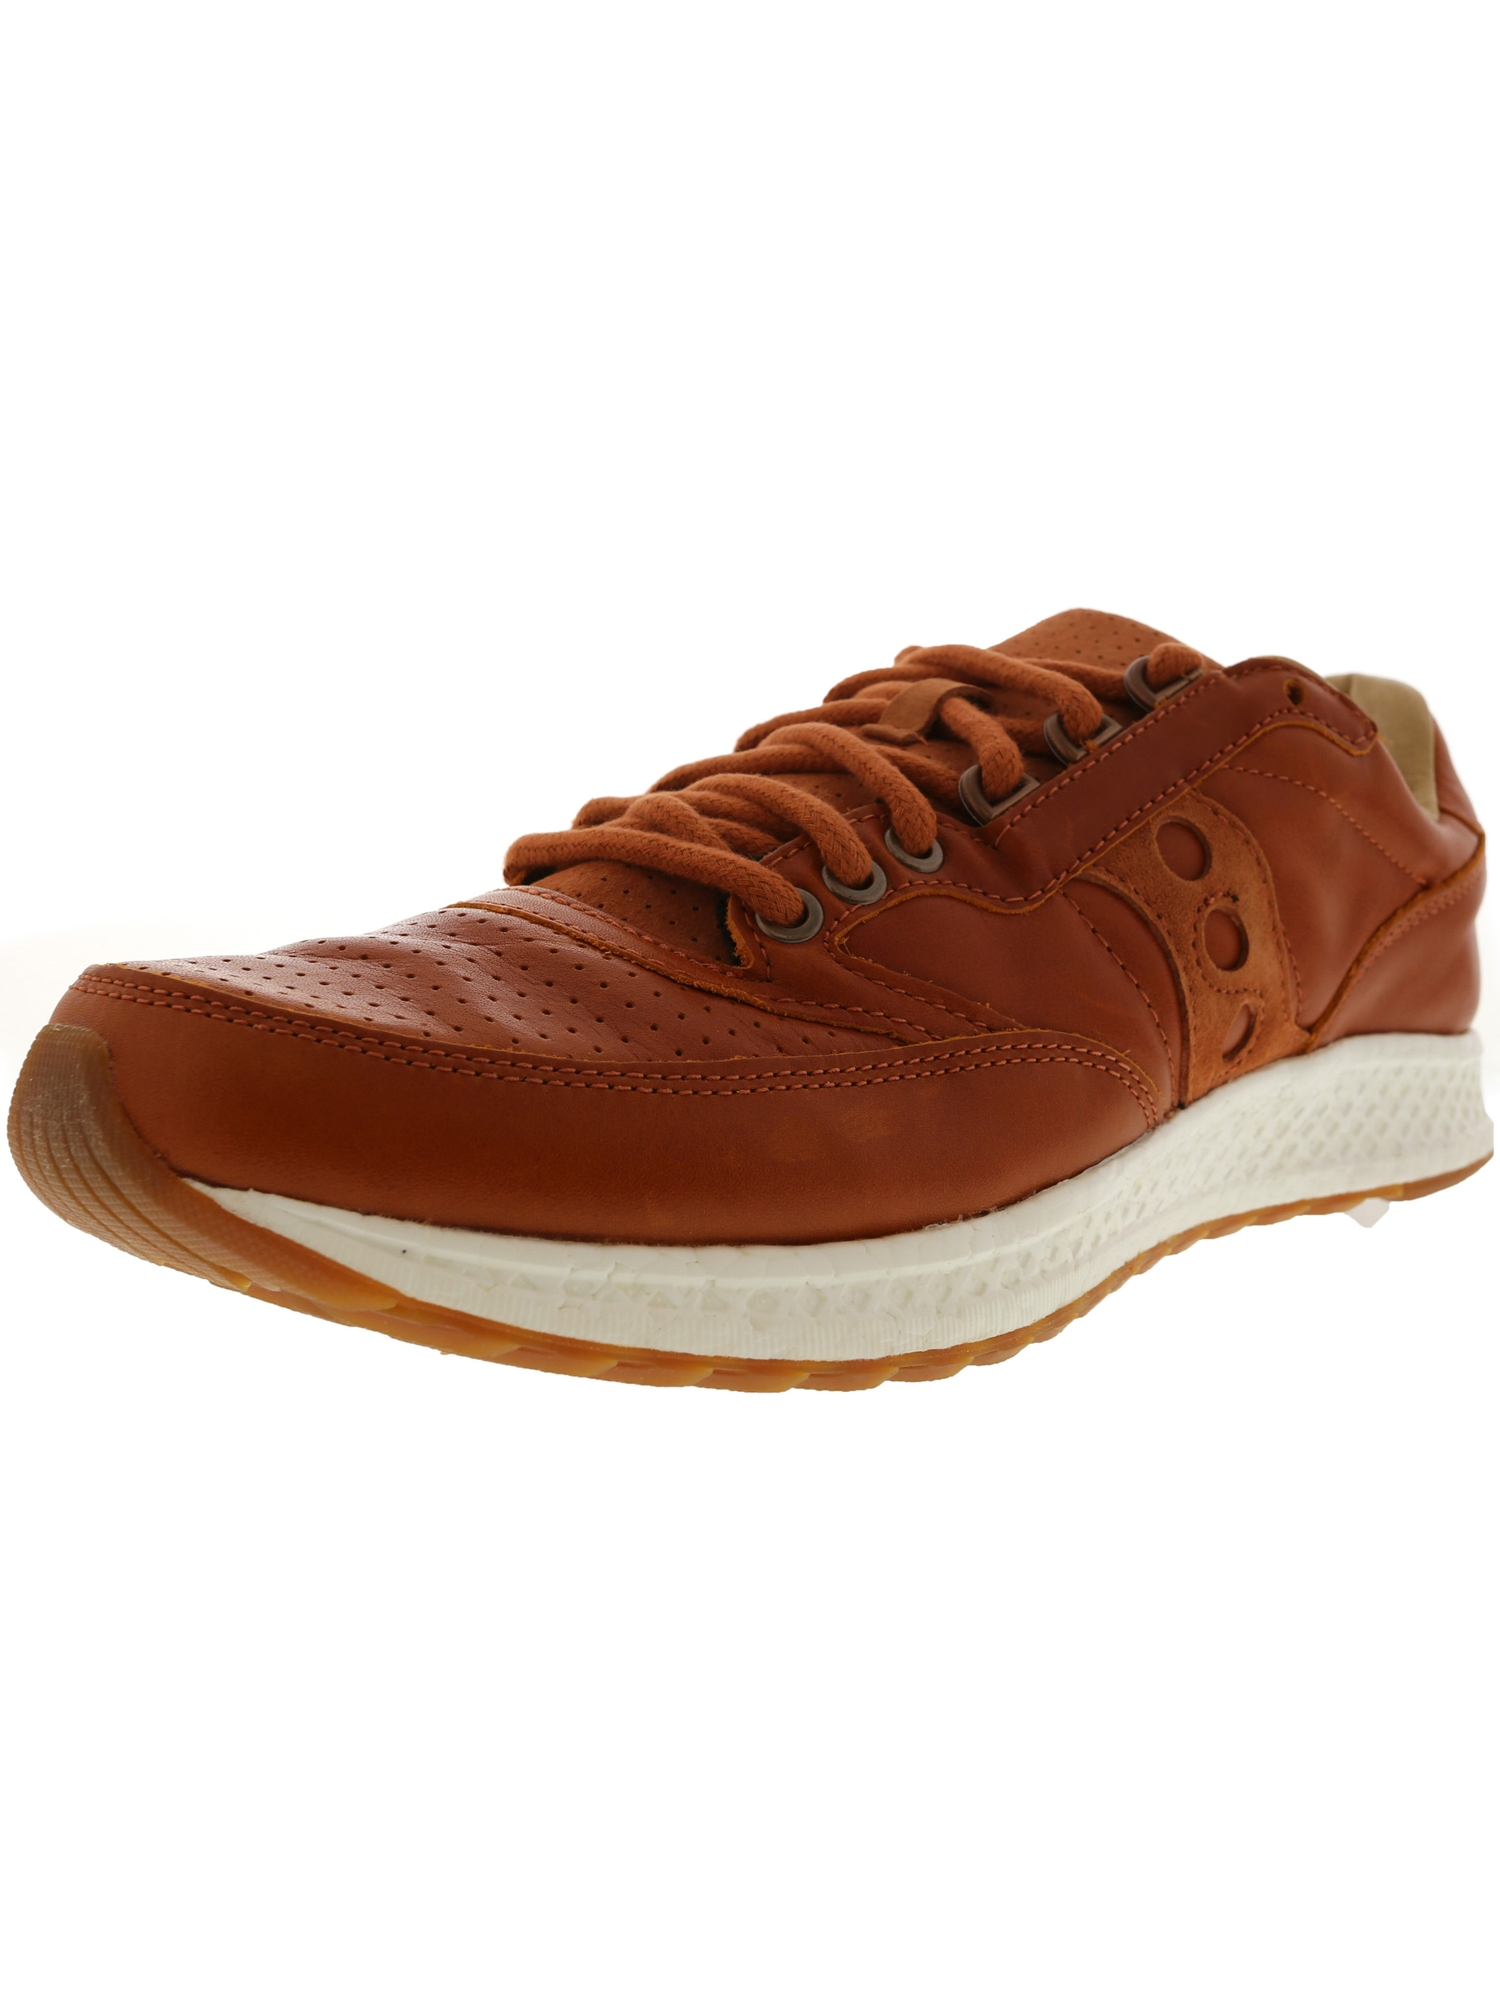 Saucony Men's Freedom Runner Brown Ankle-High Running Shoe - 12M